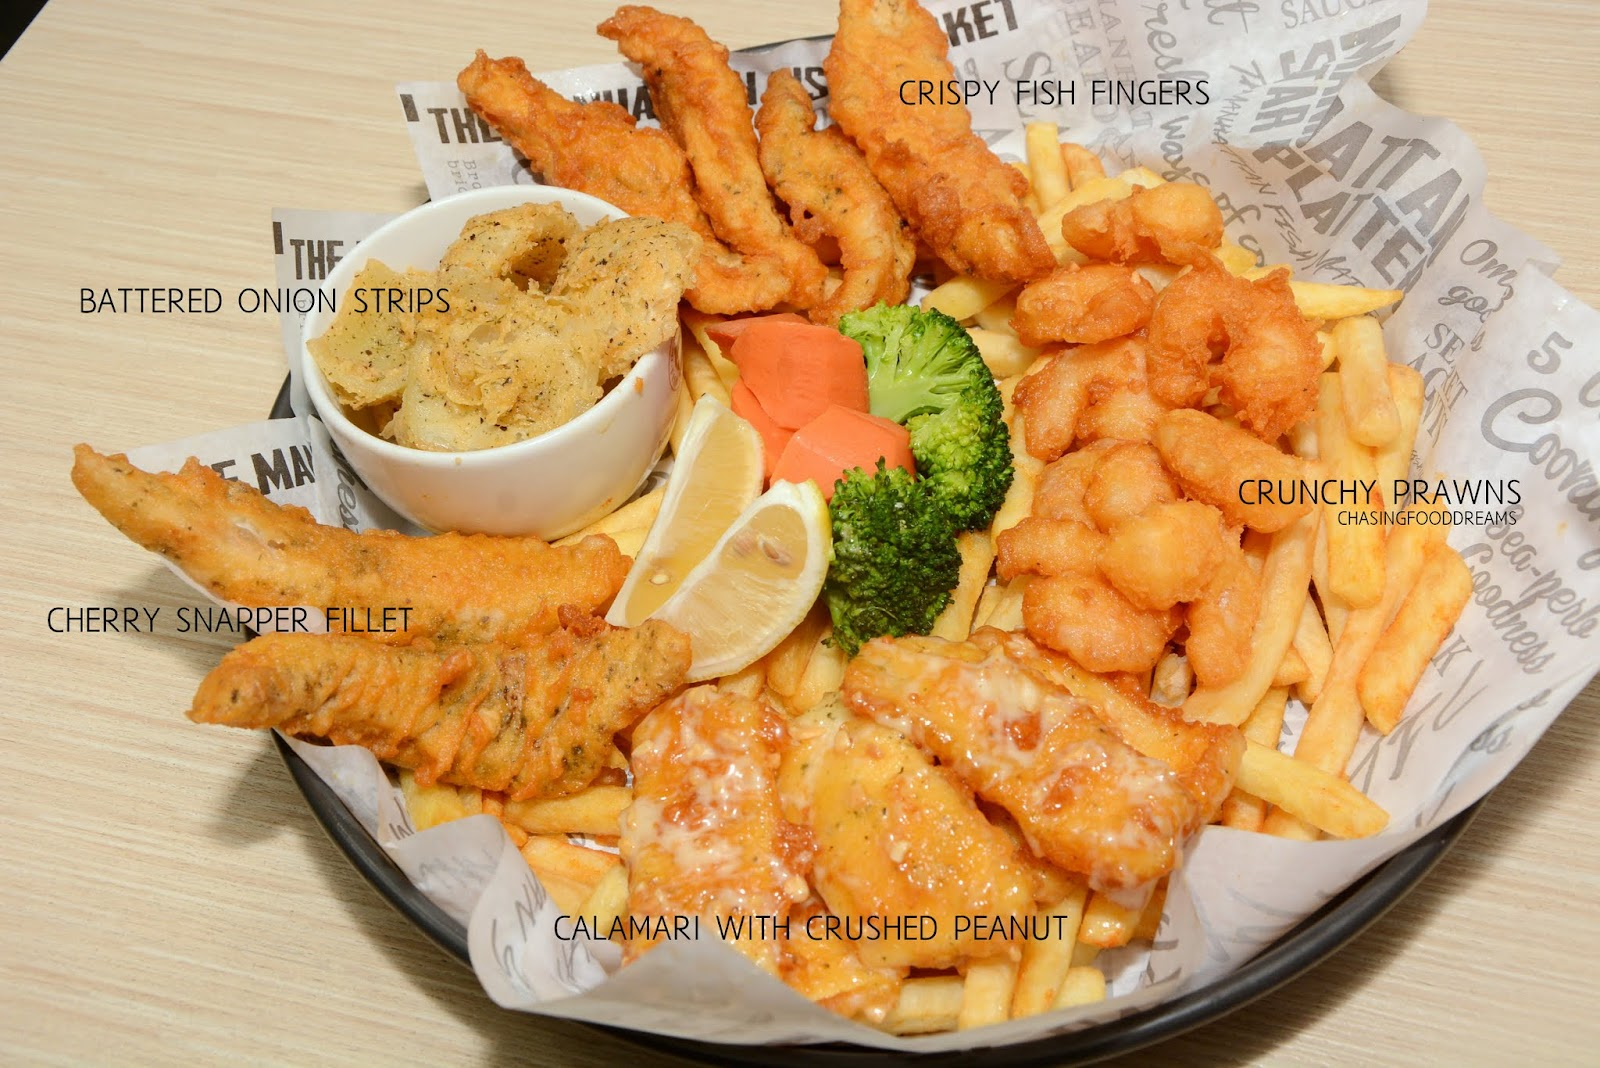 Chasing food dreams manhattan fish market new menu for Manhattan fish and chicken menu